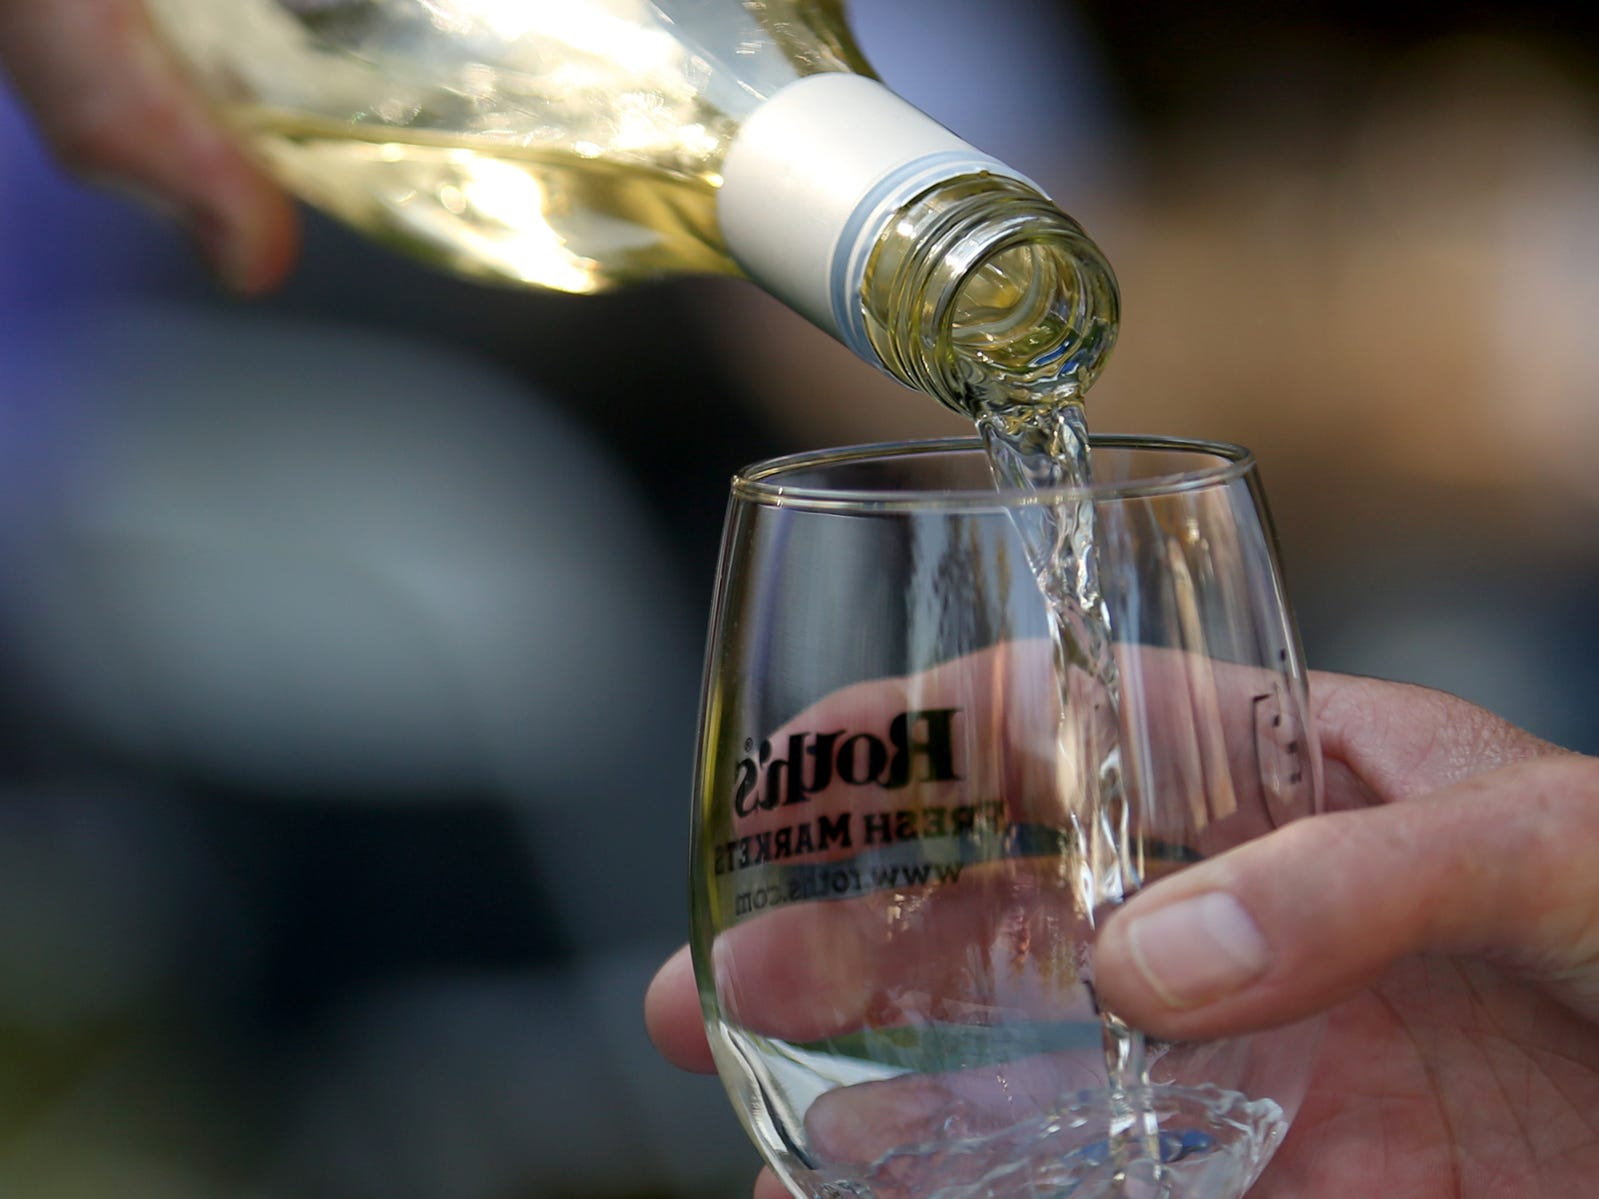 Wine is poured for tastings during the Wine & Jazz Festival at Deepwood Museum & Gardens in Salem on Sunday, Oct. 21, 2018.